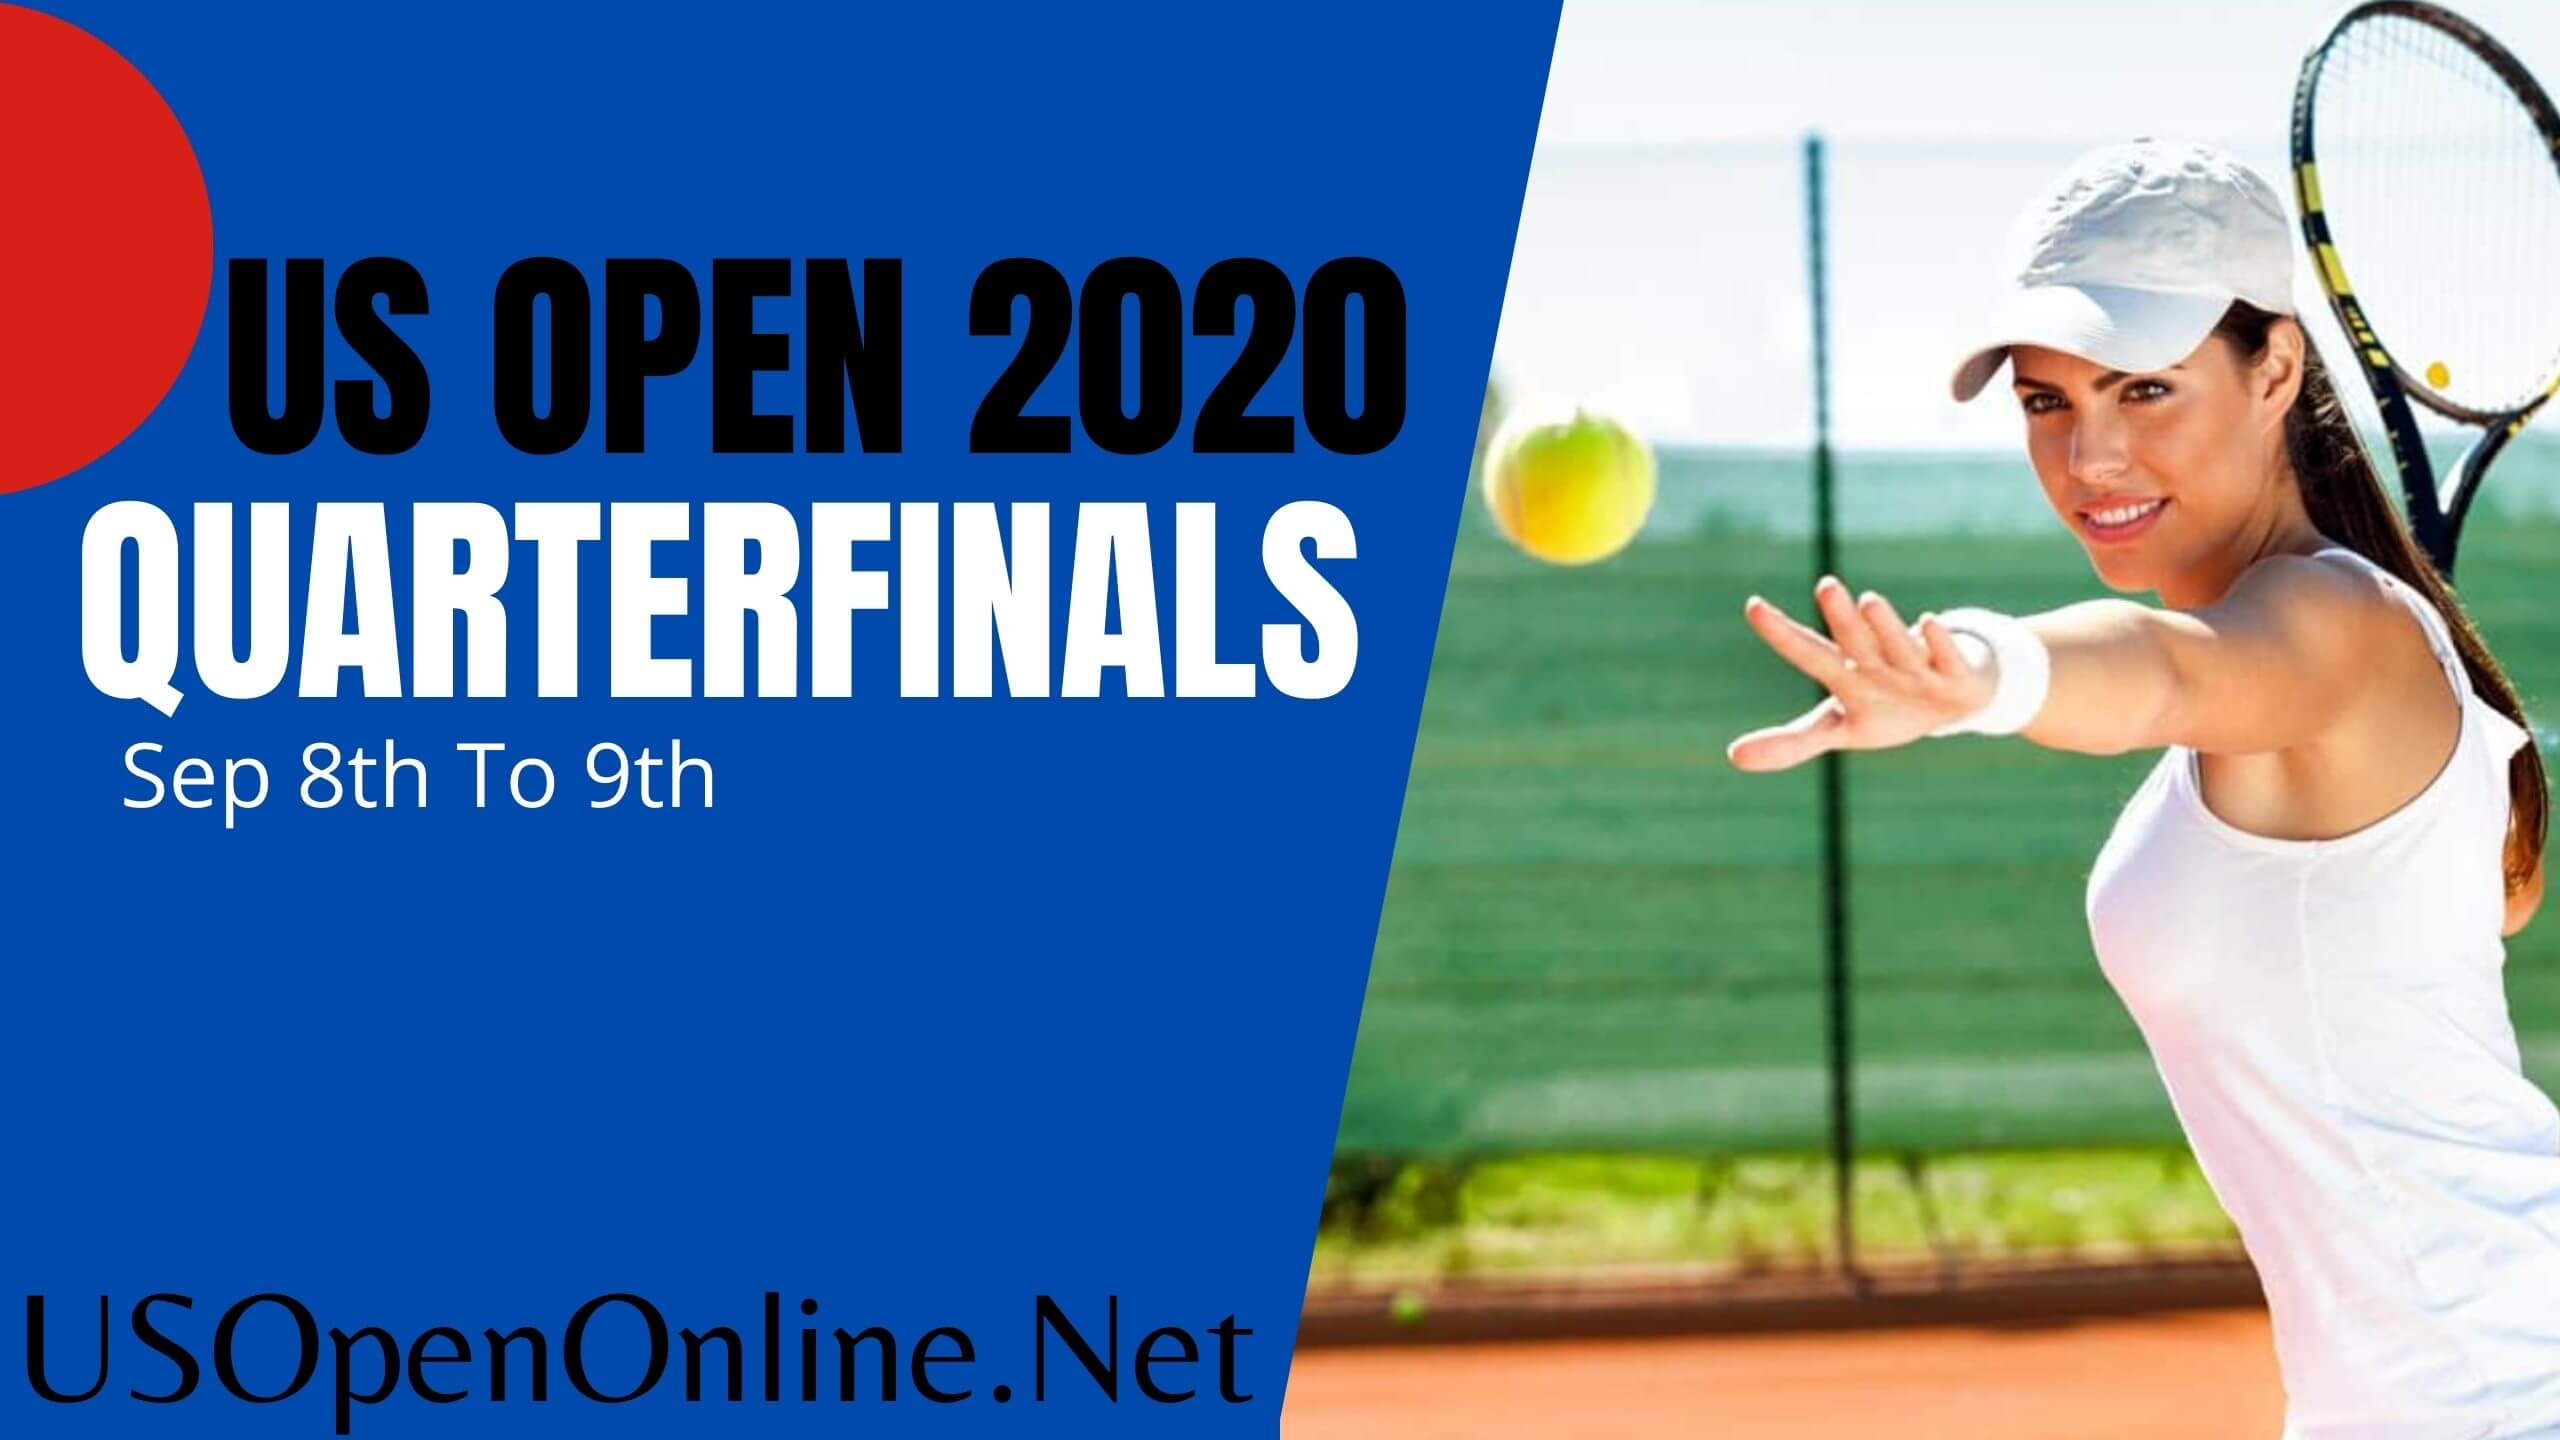 2018 US Open Tennis Quarterfinals Live